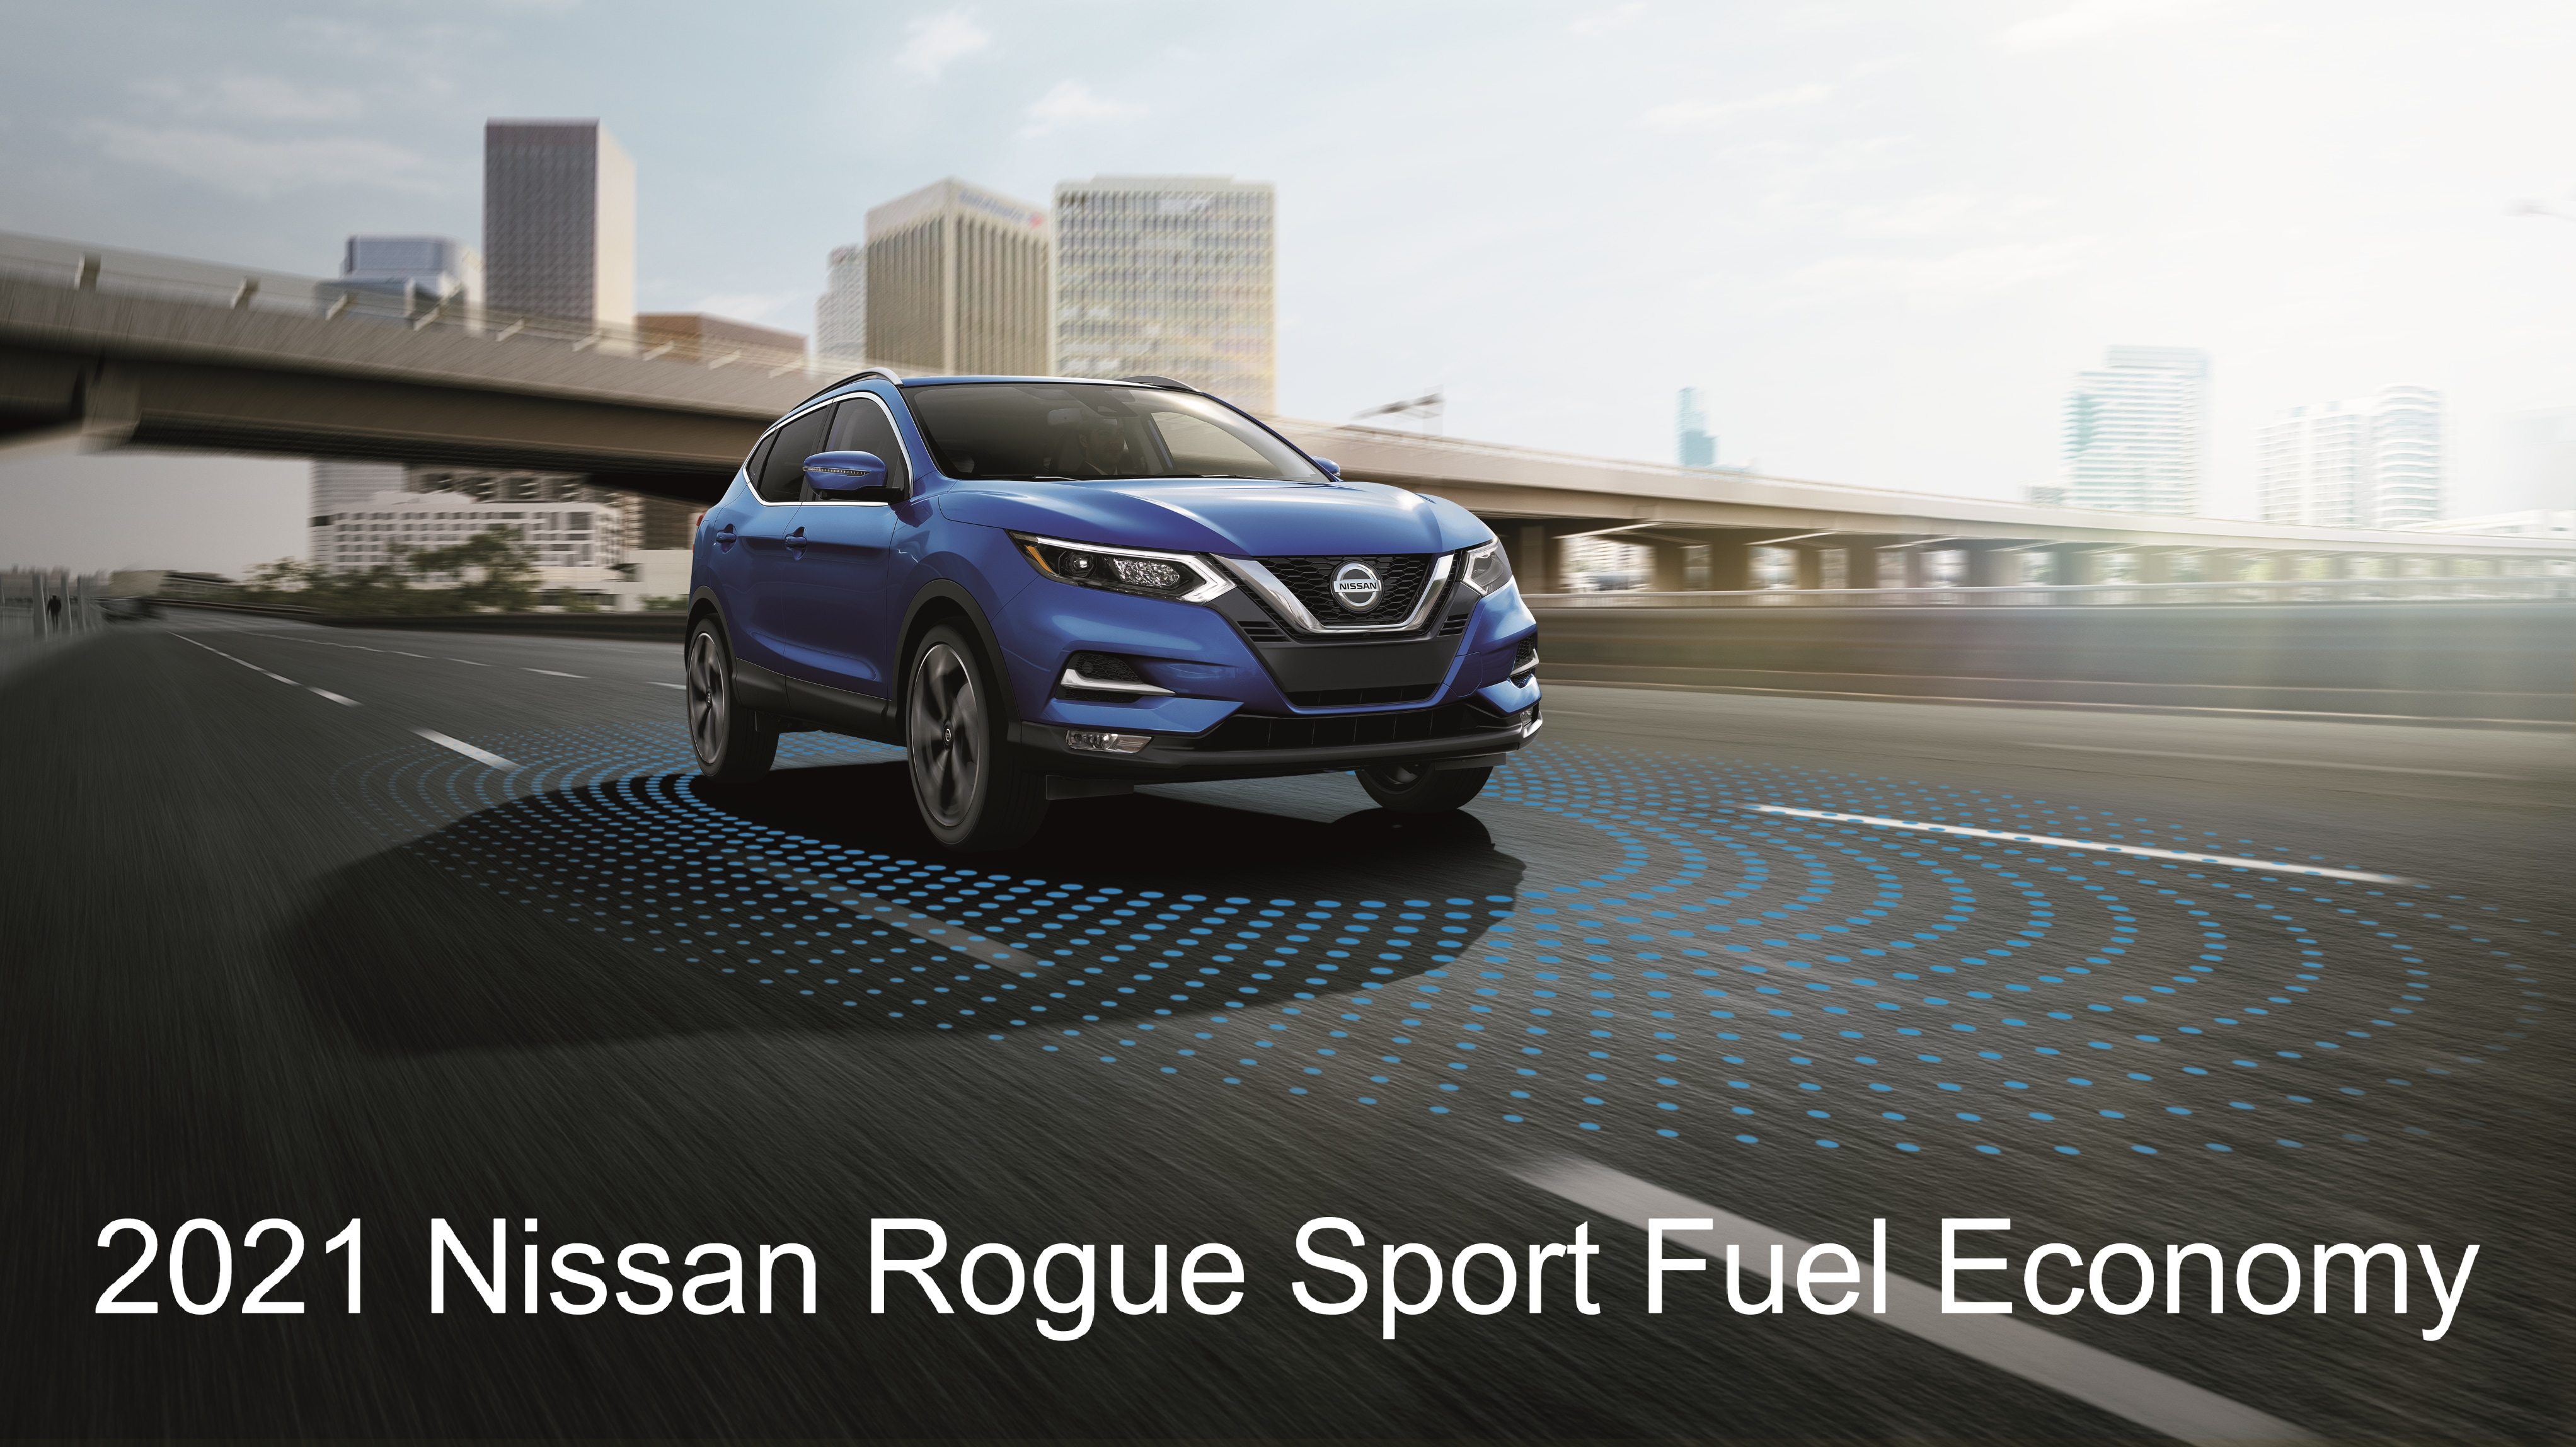 Front 3/4 View of Blue Nissan Rogue Sport